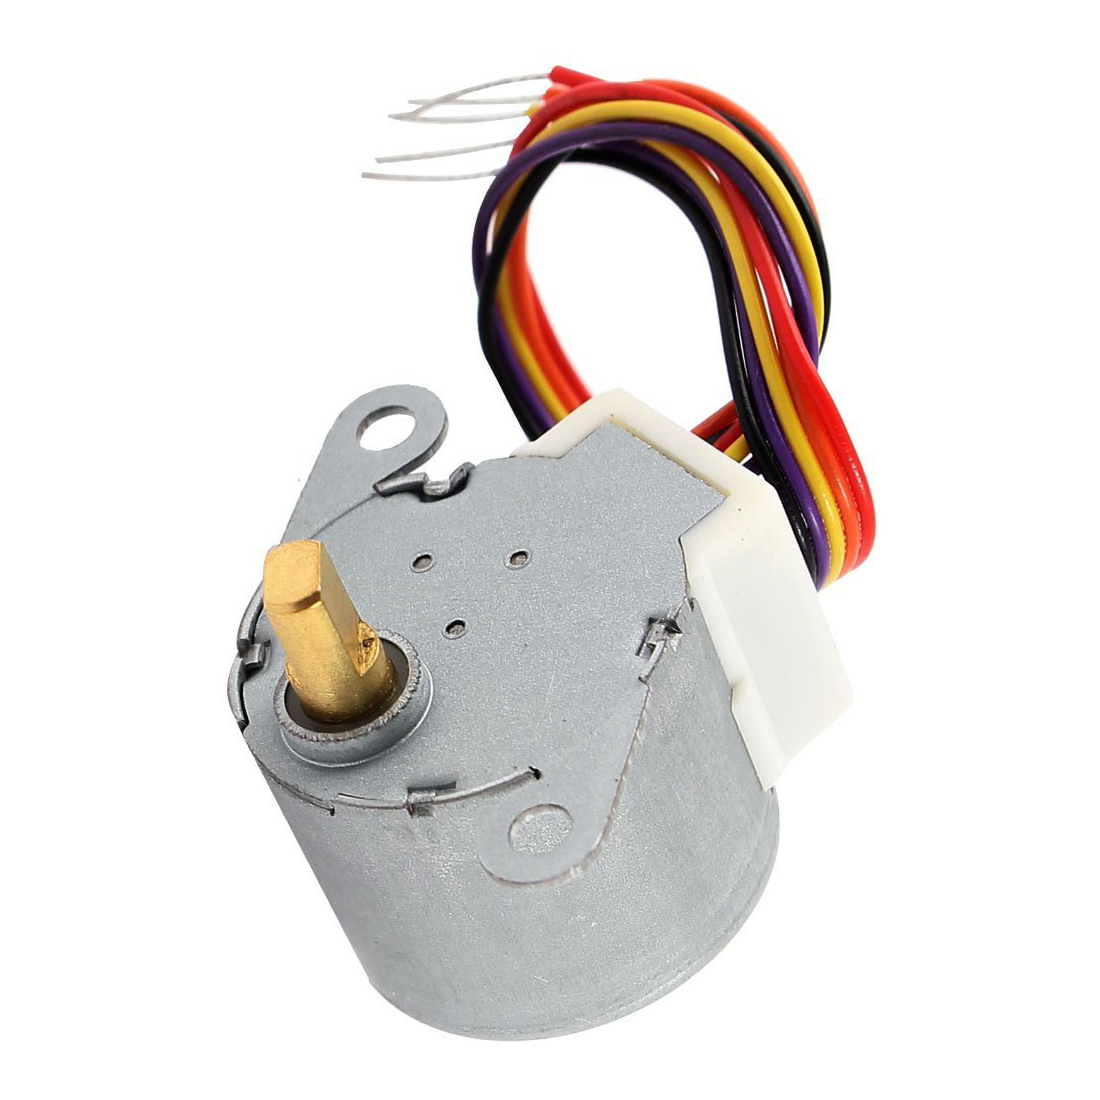 DC 12V CNC Reducing Stepping Stepper Motor 0.6A 10oz.in 24BYJ48 Silver C8H9